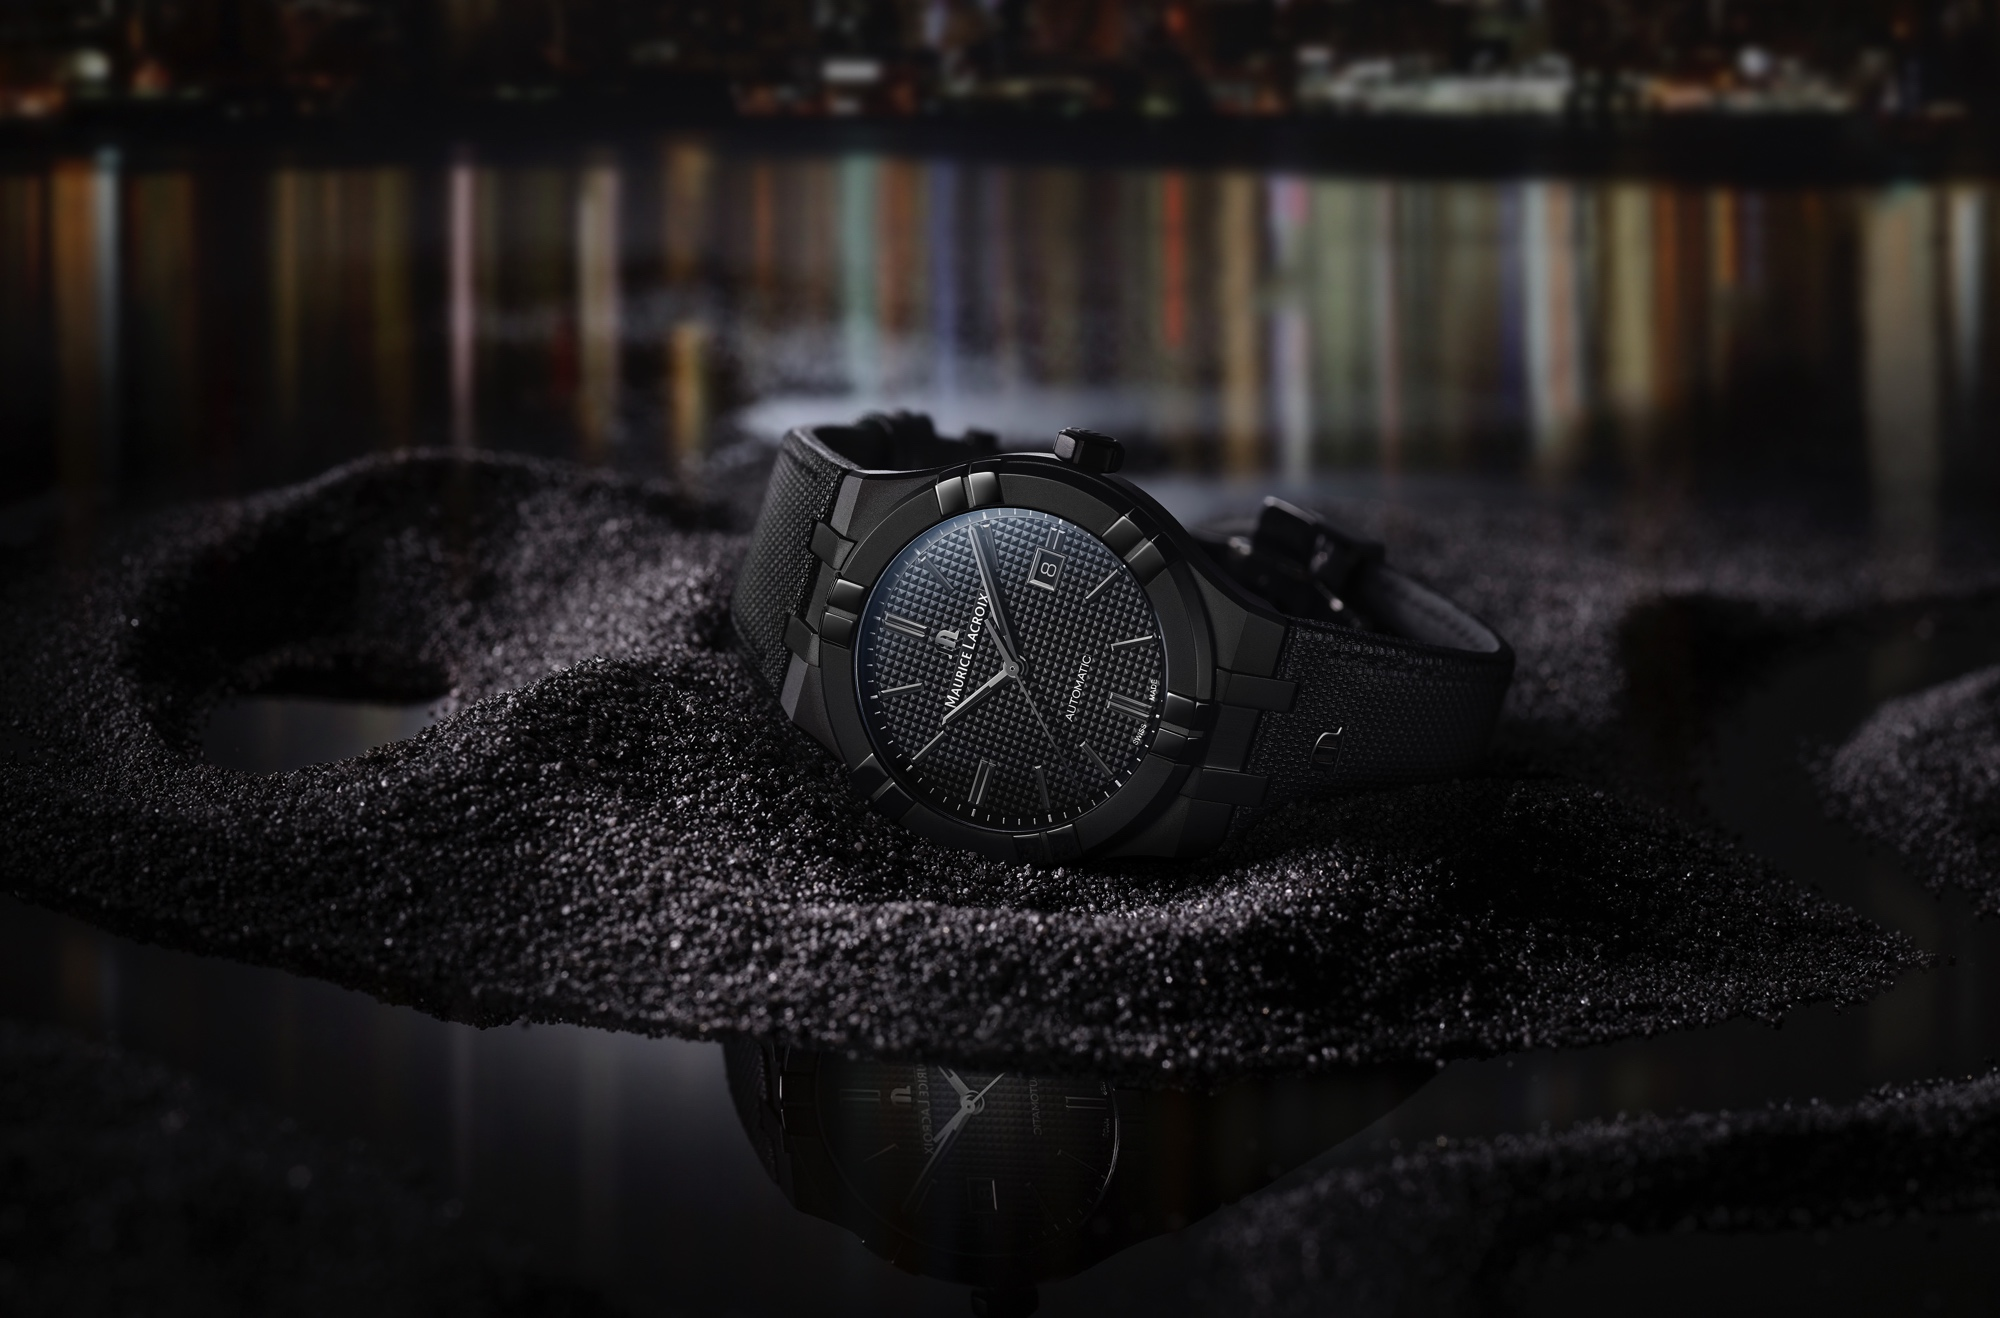 Aikon Automatic in black steel